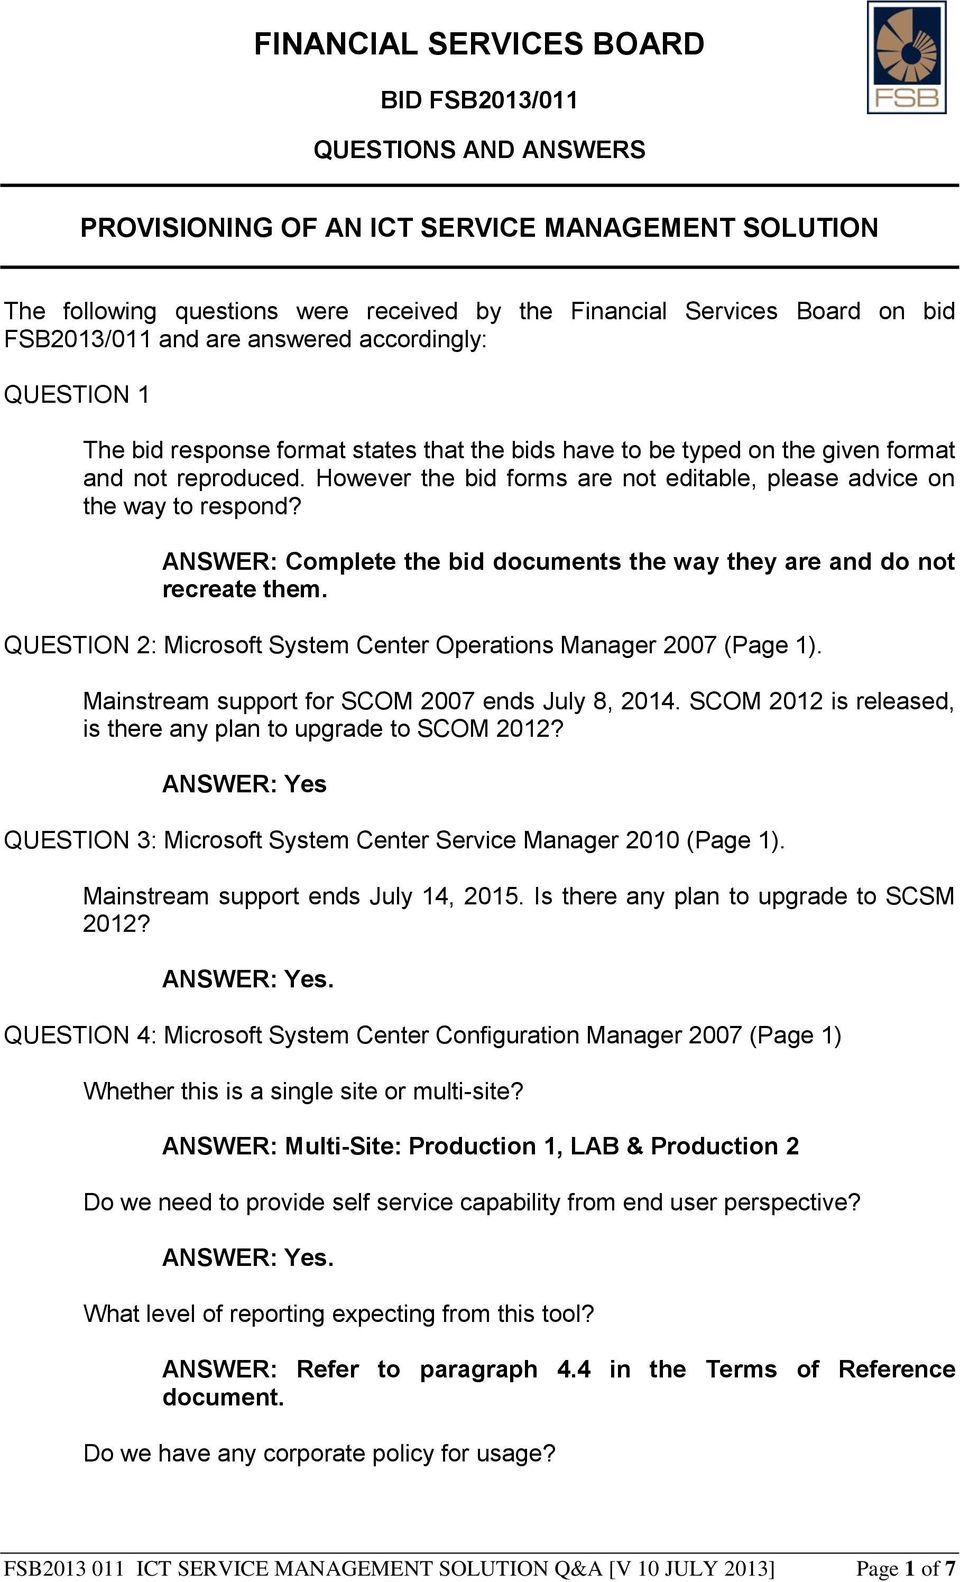 ANSWER: Complete the bid documents the way they are and do not recreate them. QUESTION 2: Microsoft System Center Operations Manager 2007 (Page 1). Mainstream support for SCOM 2007 ends July 8, 2014.